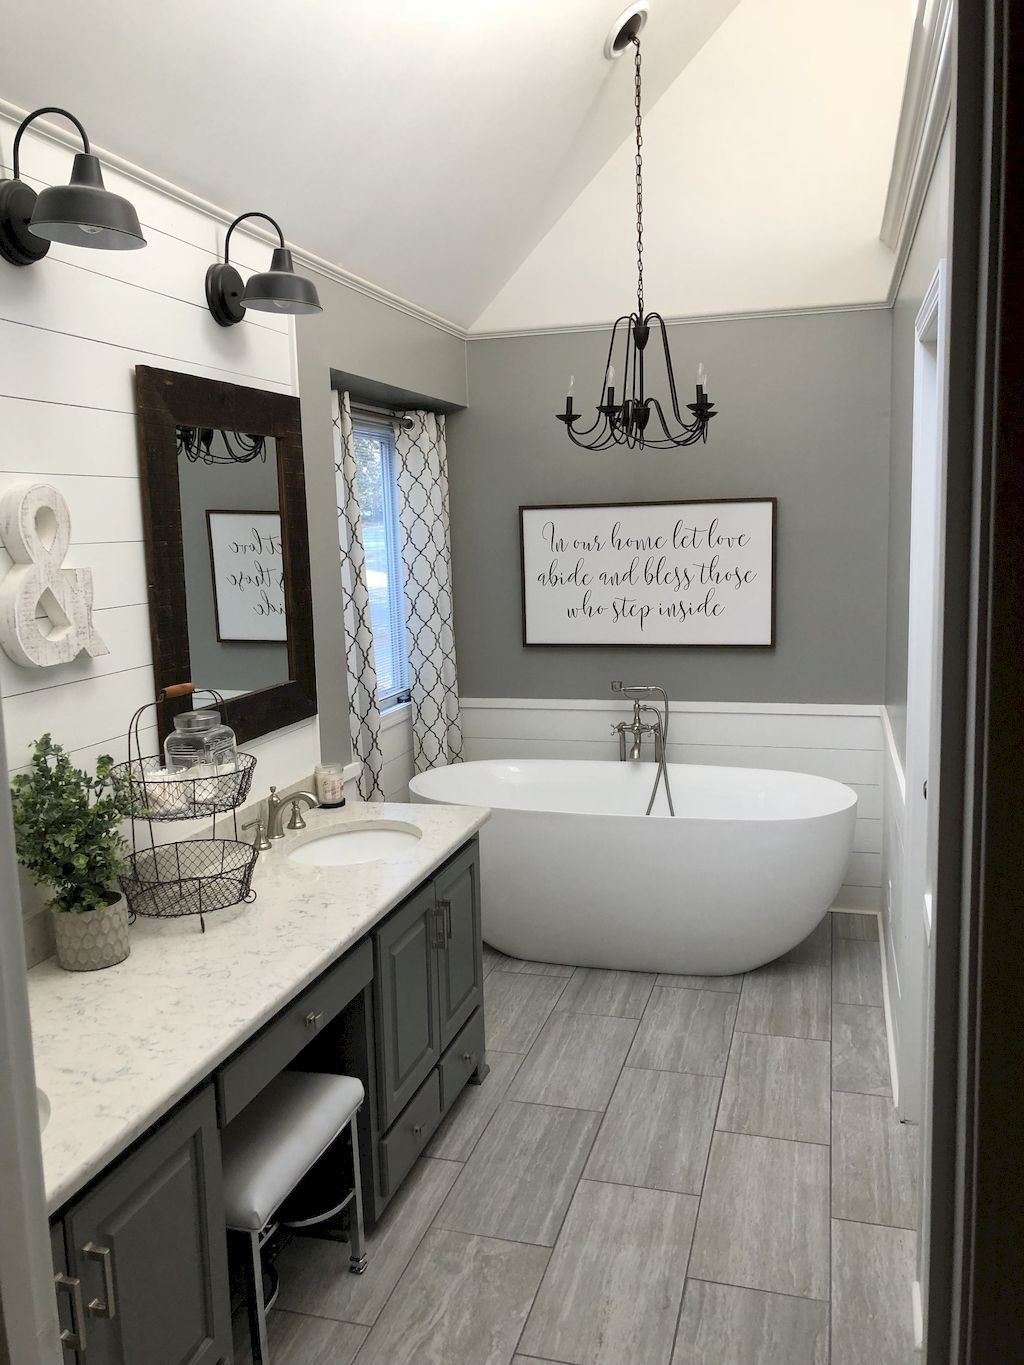 150 Awesome Farmhouse Bathroom Tile Floor Decor Ideas And Remodel To